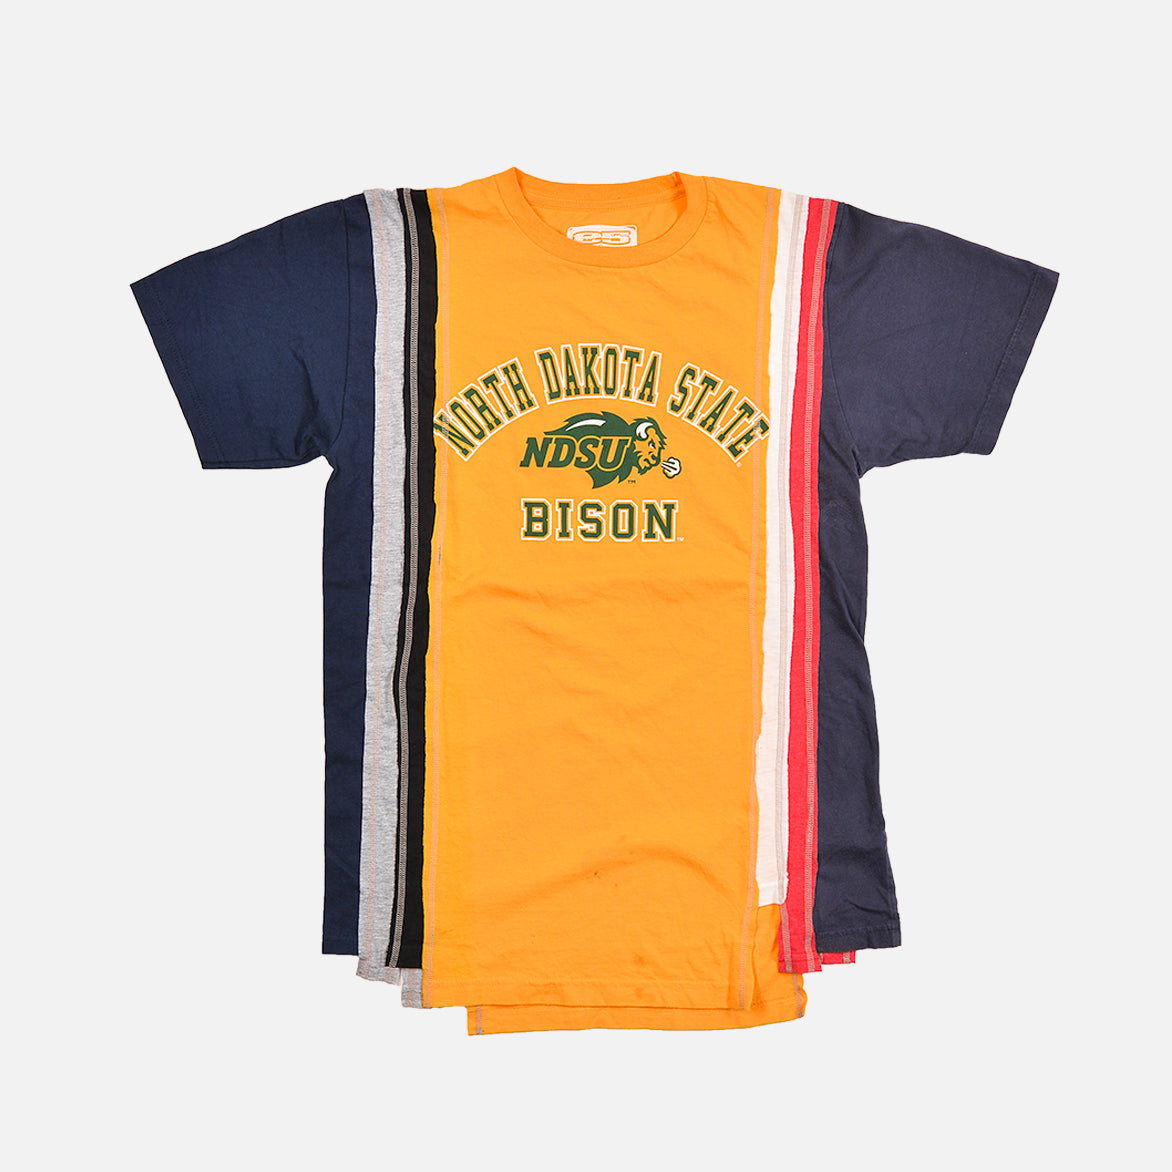 7 CUTS COLLEGE S/S TEE (MEDIUM) - MULTI / NORTH DAKOTA STATE